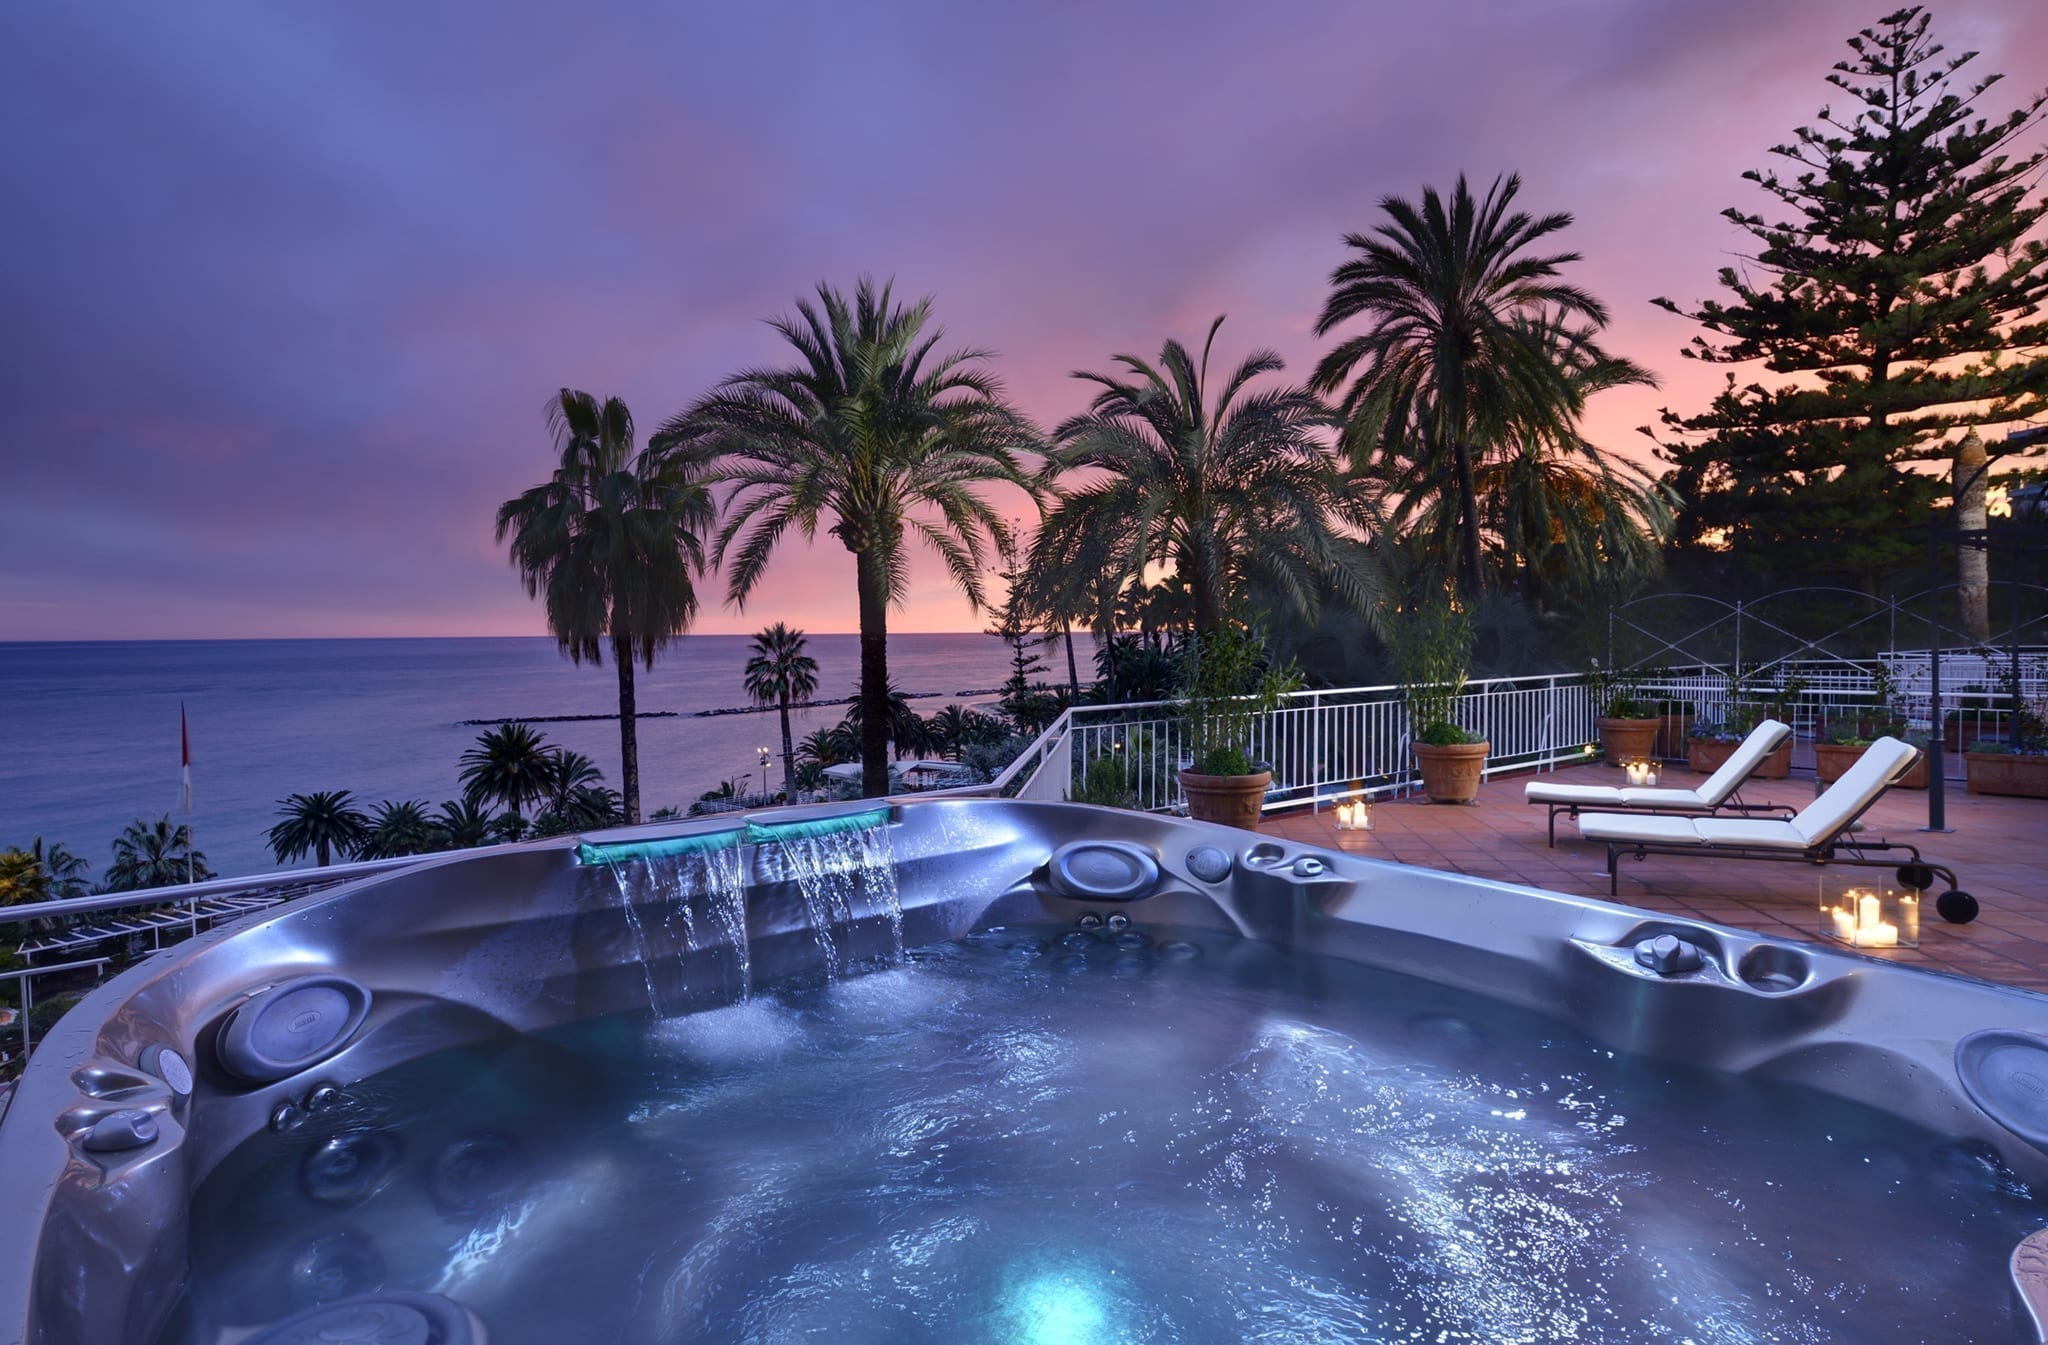 Royal Hotel San Remo The Little Guest Hotels Collection